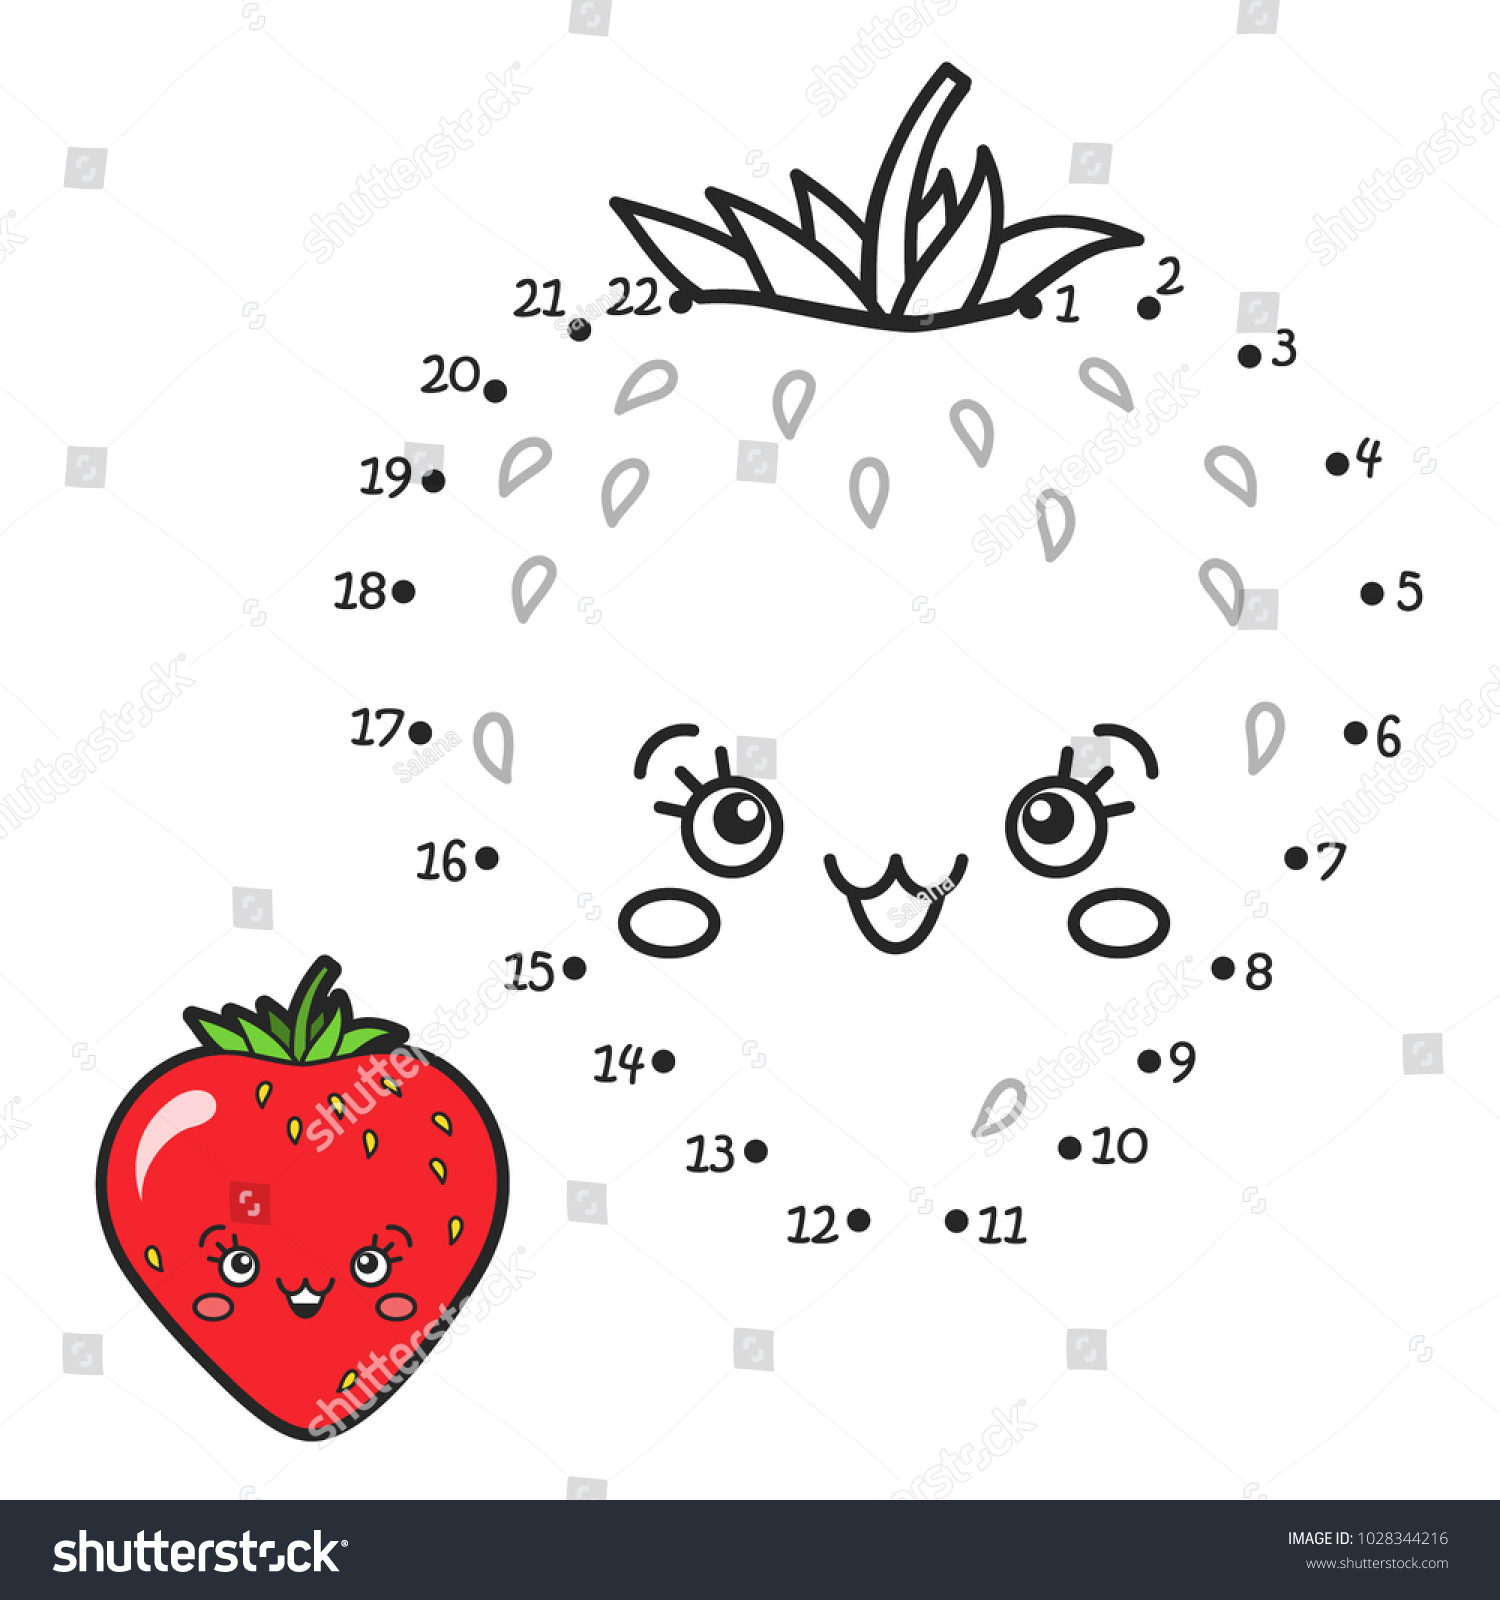 Vector Illustration Numbers Game Connect Dot Stock Vector 1028344216 ...